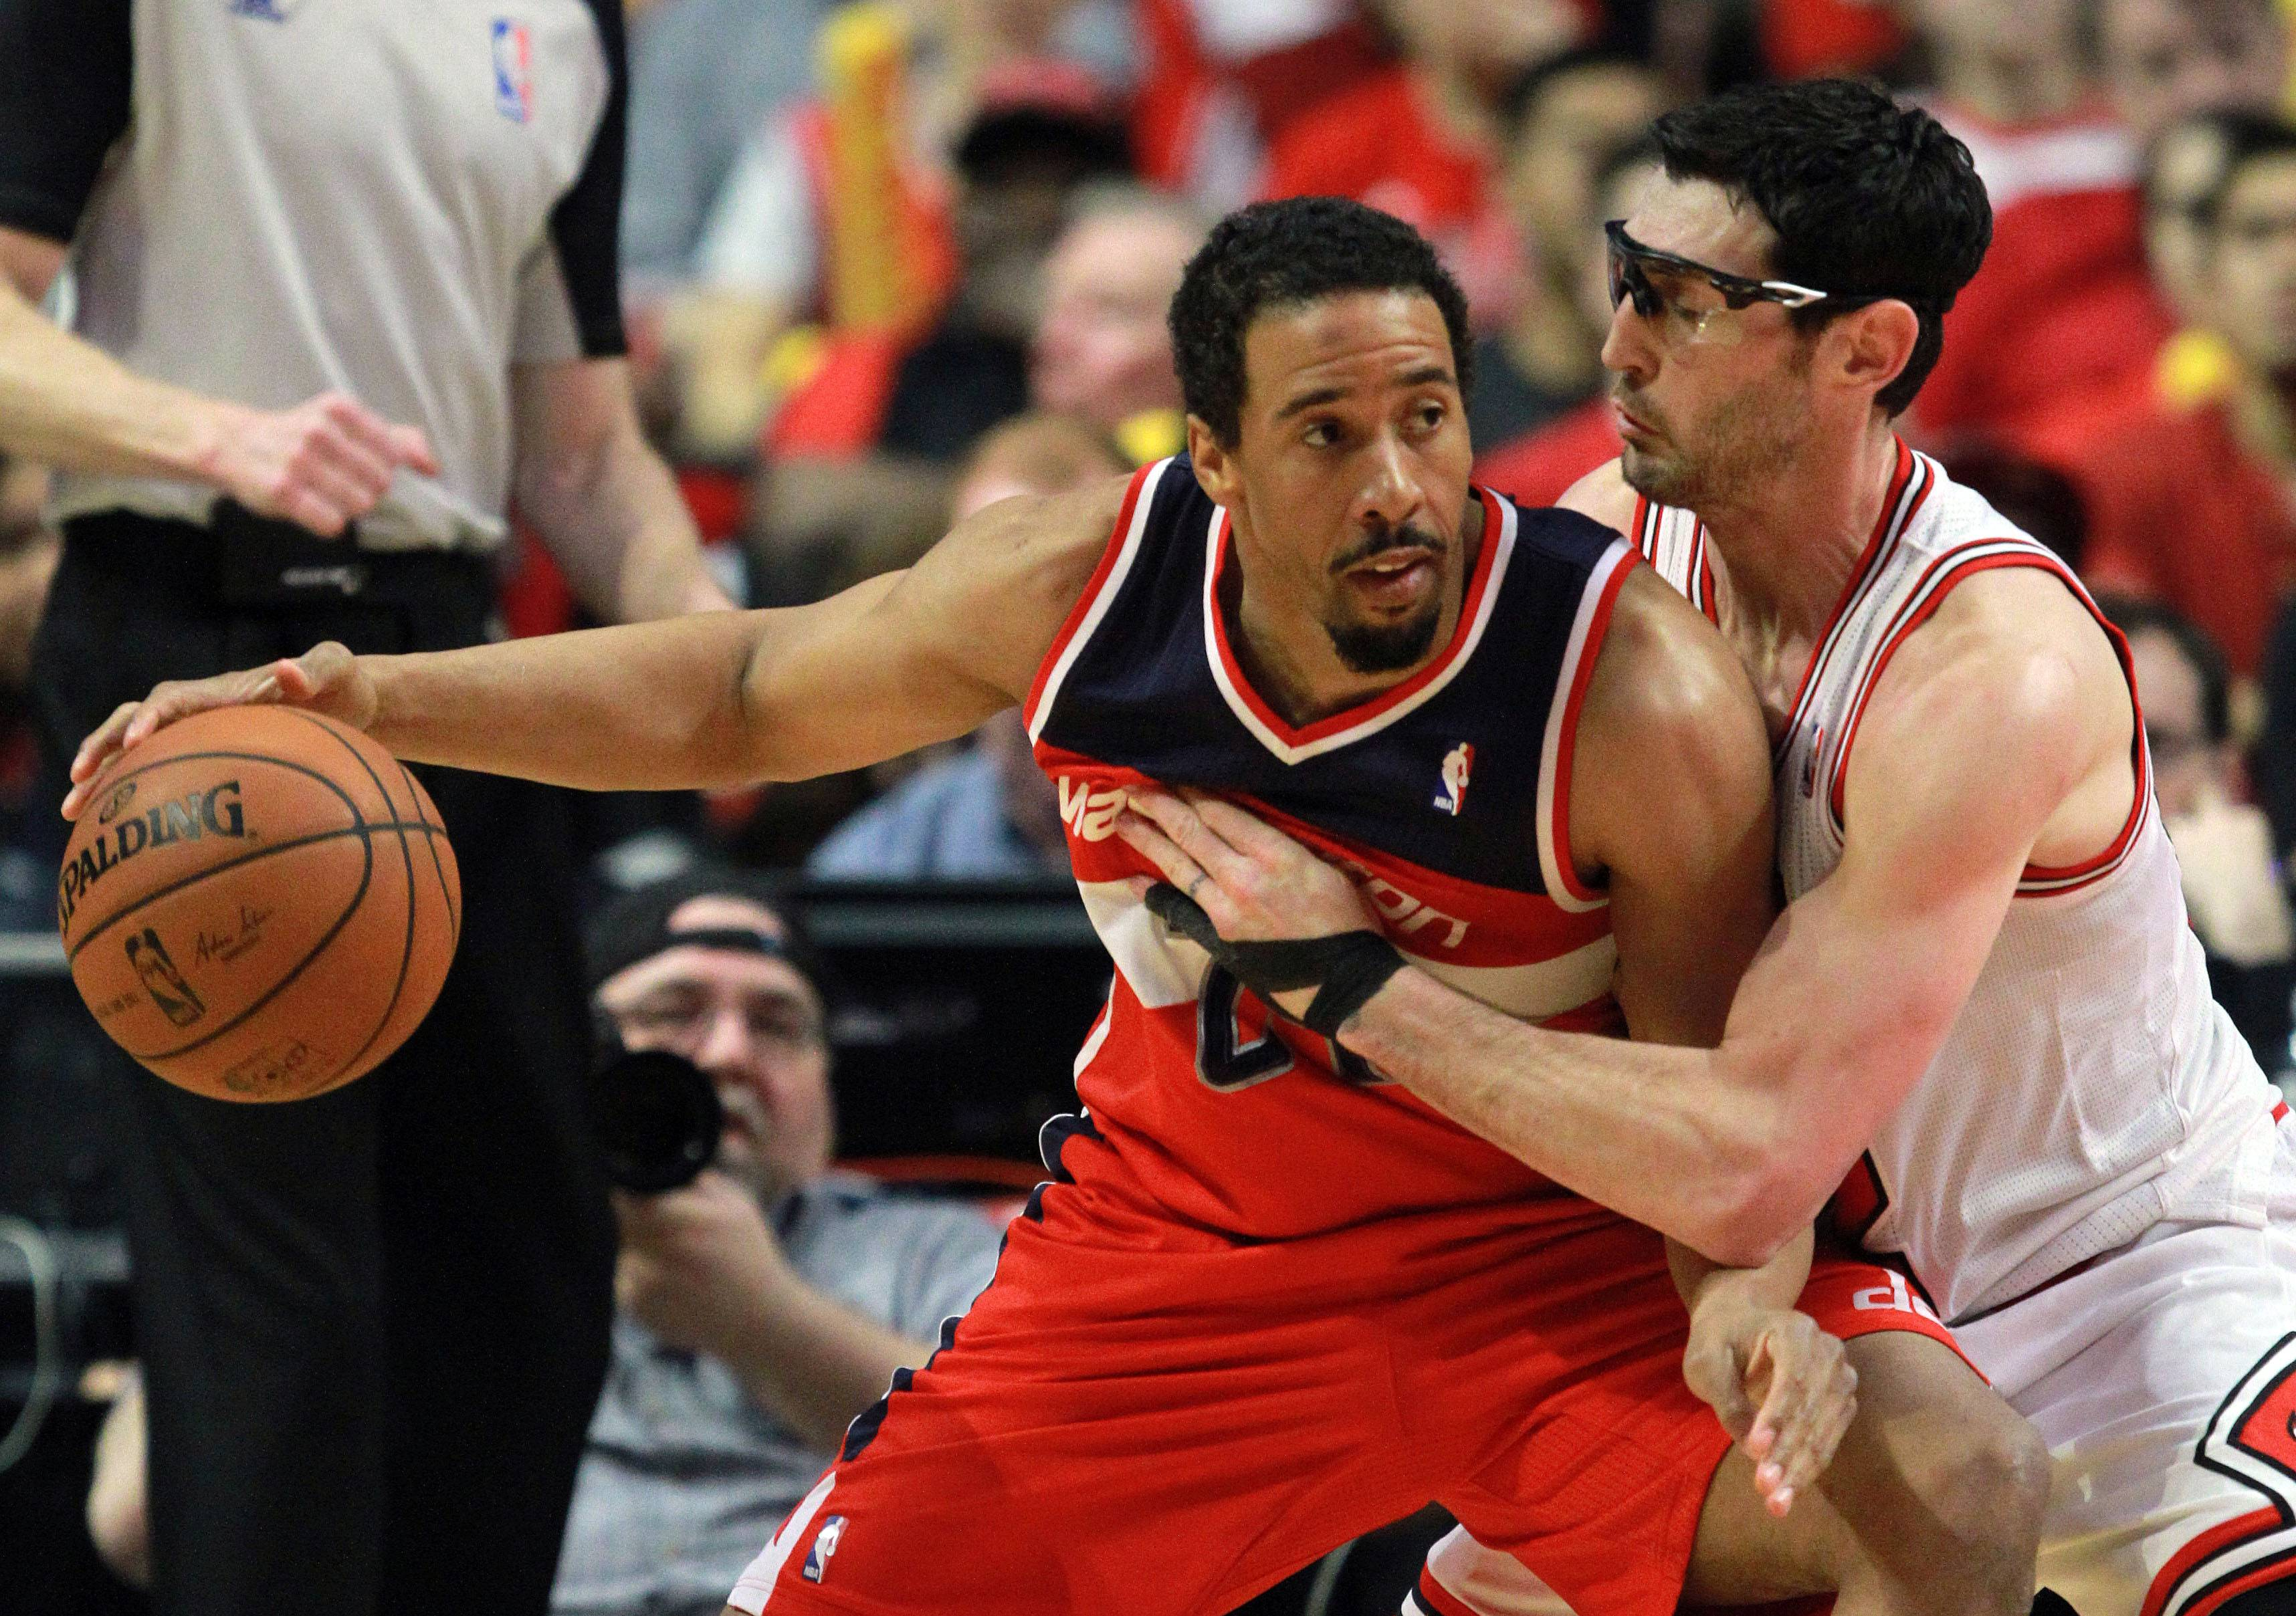 Kirk Hinrich, right, is set to sign a two-year contract to return to the Bulls.